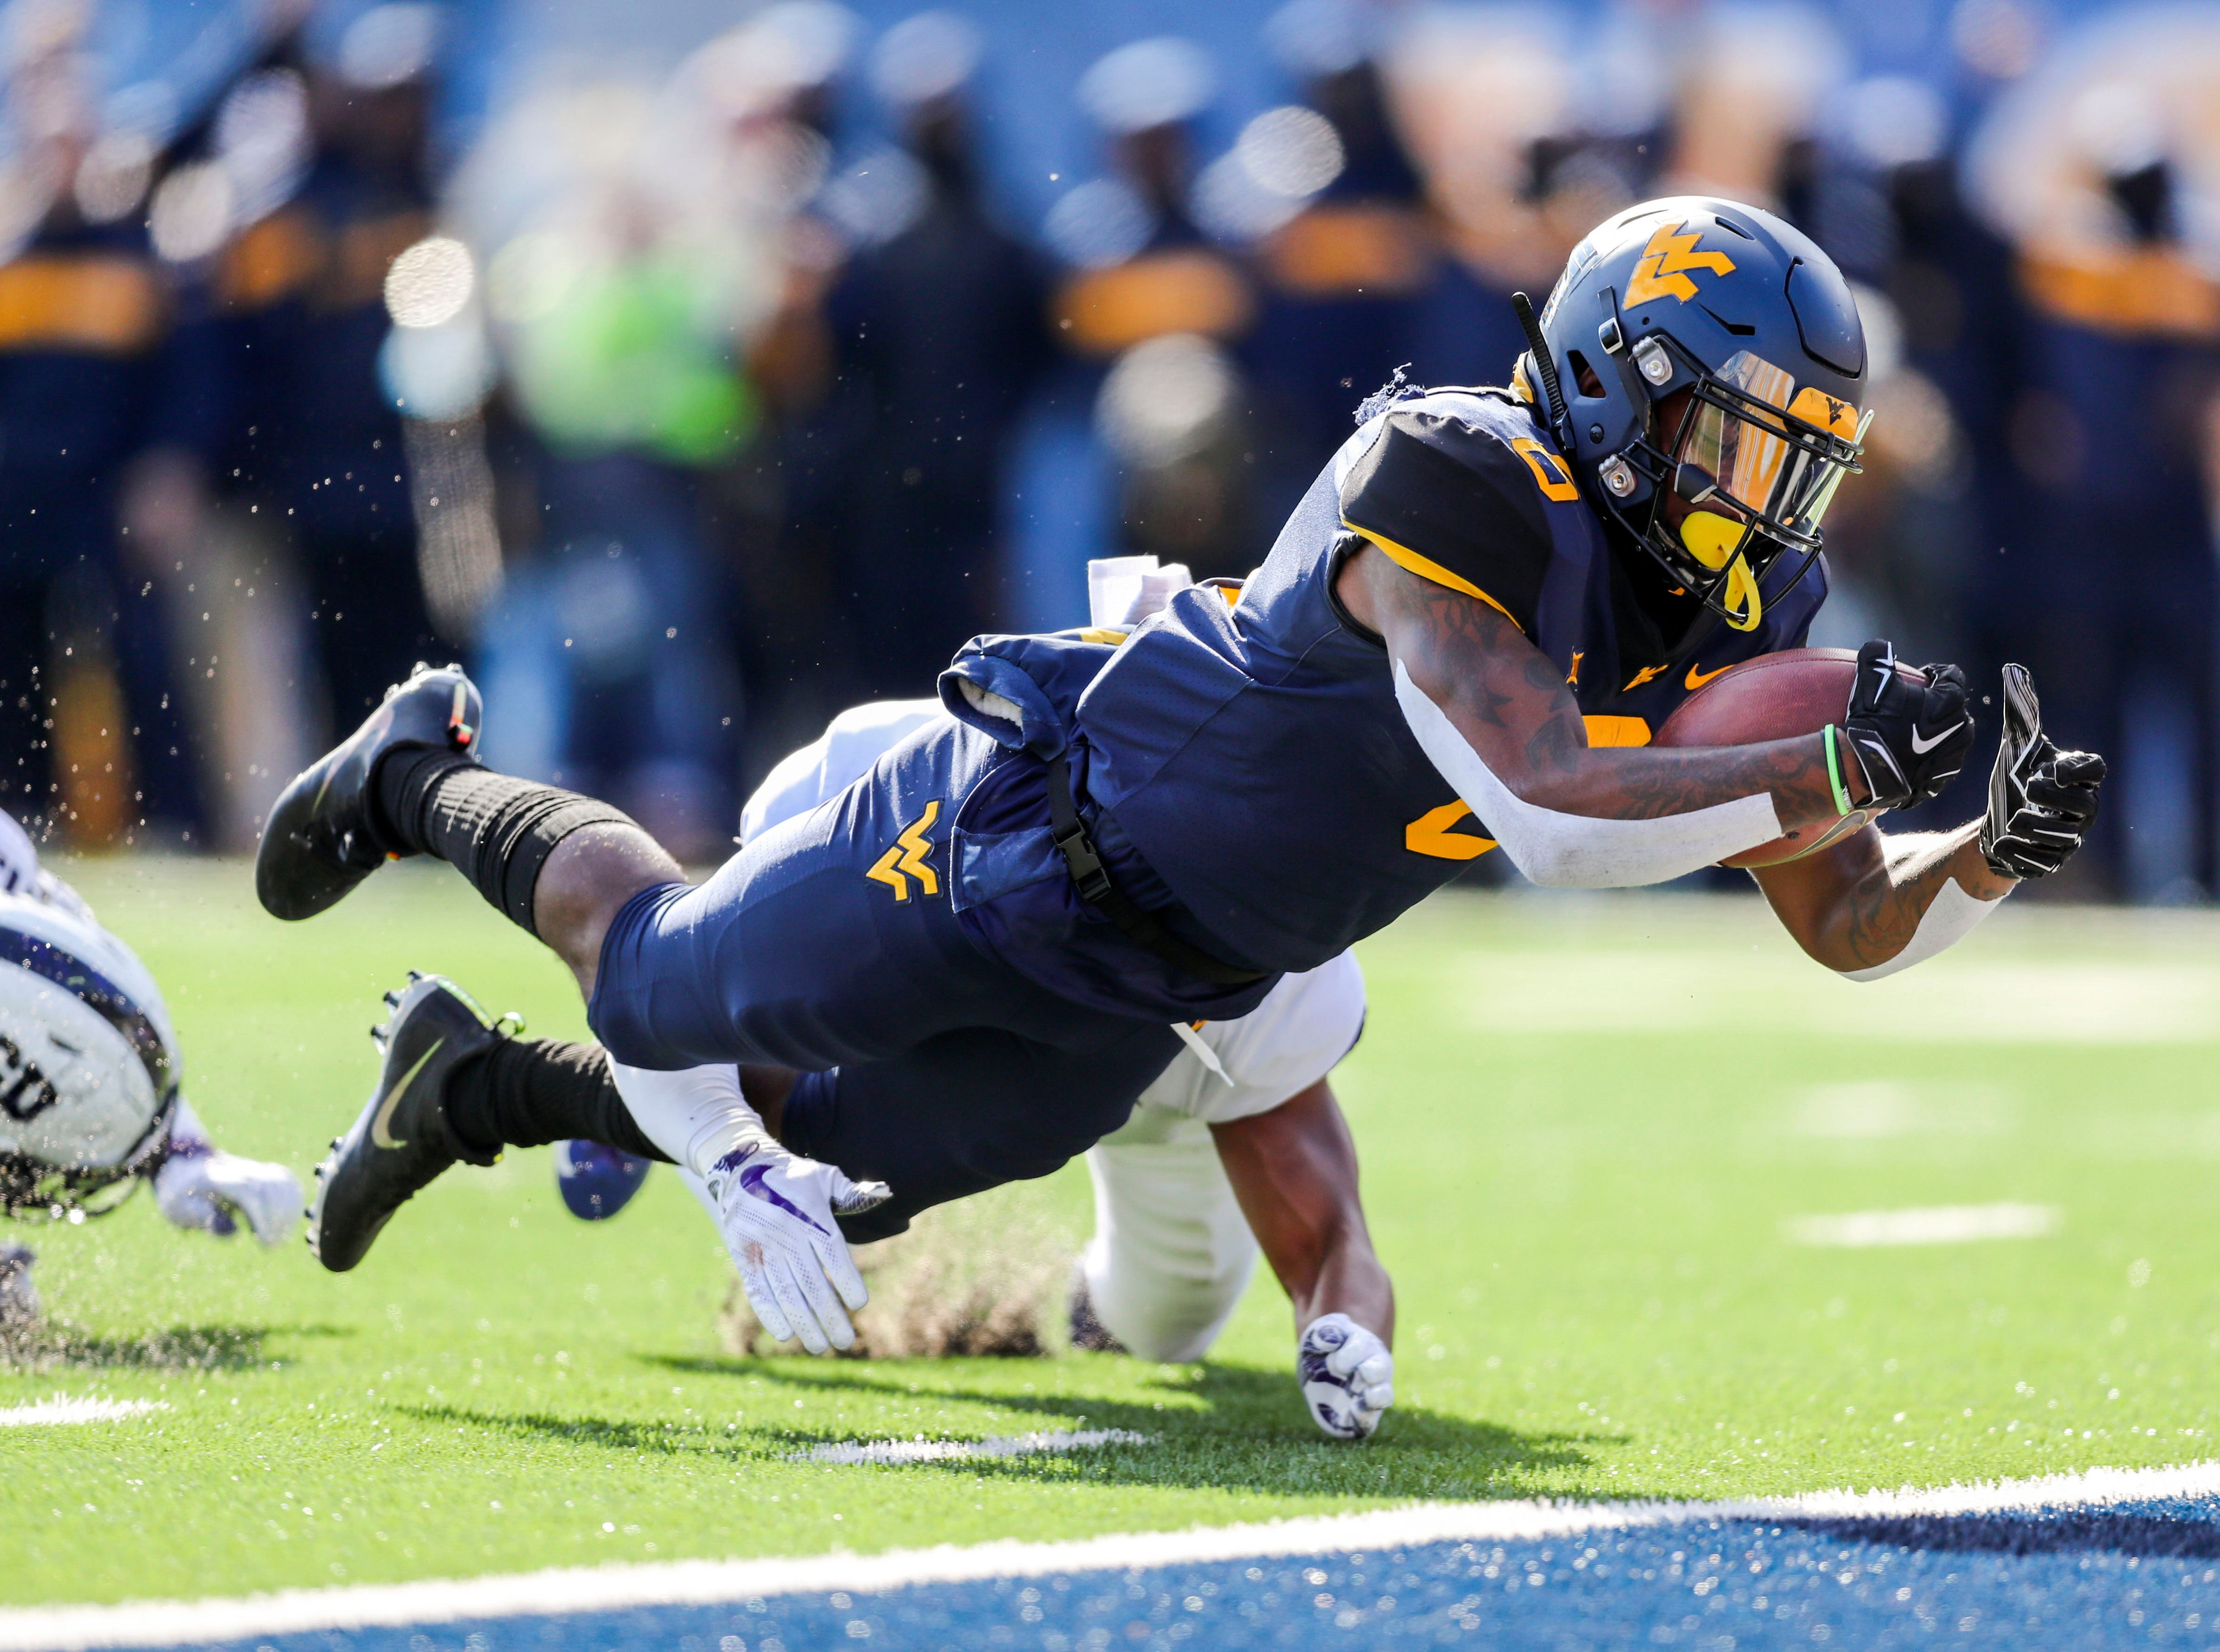 West Virginia Mountaineers running back Kennedy McKoy (6) runs for a touchdown during the second quarter against the TCU Horned Frogs at Mountaineer Field at Milan Puskar Stadium.